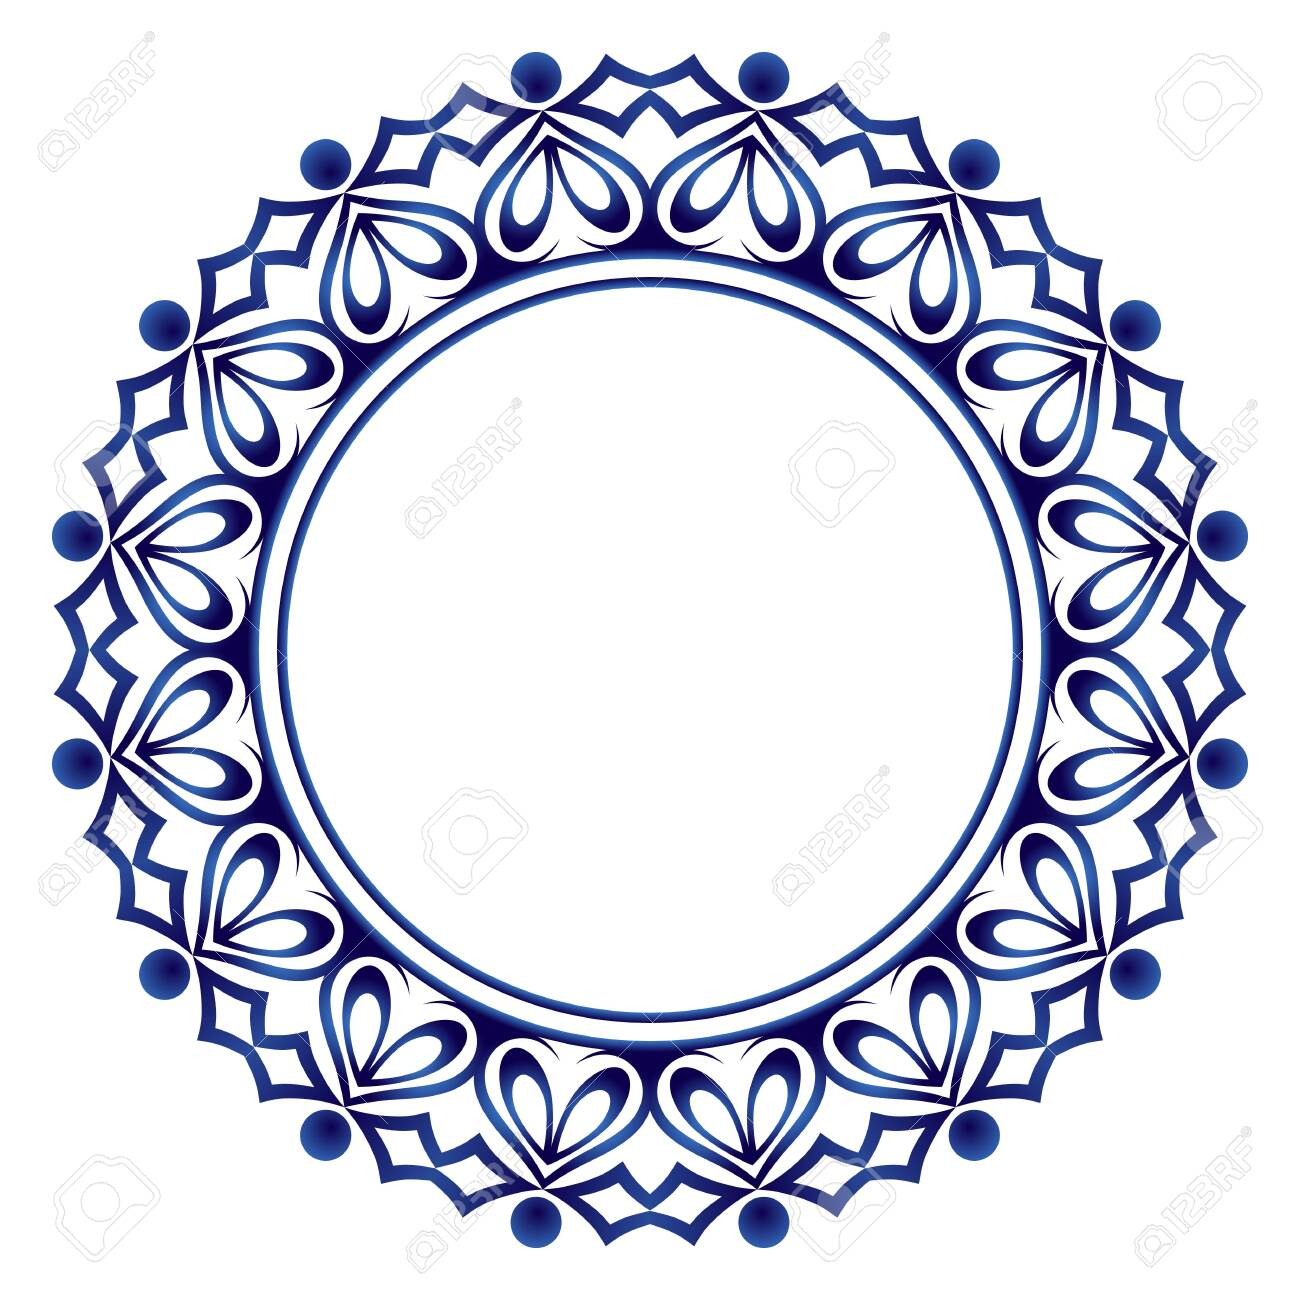 Decorative round ornament. Ceramic tile pattern. Pattern for plates or dishes. Islamic, indian, arabic motifs. Porcelain pattern design. Abstract floral ornament border. Vector stock illustration - 124064909